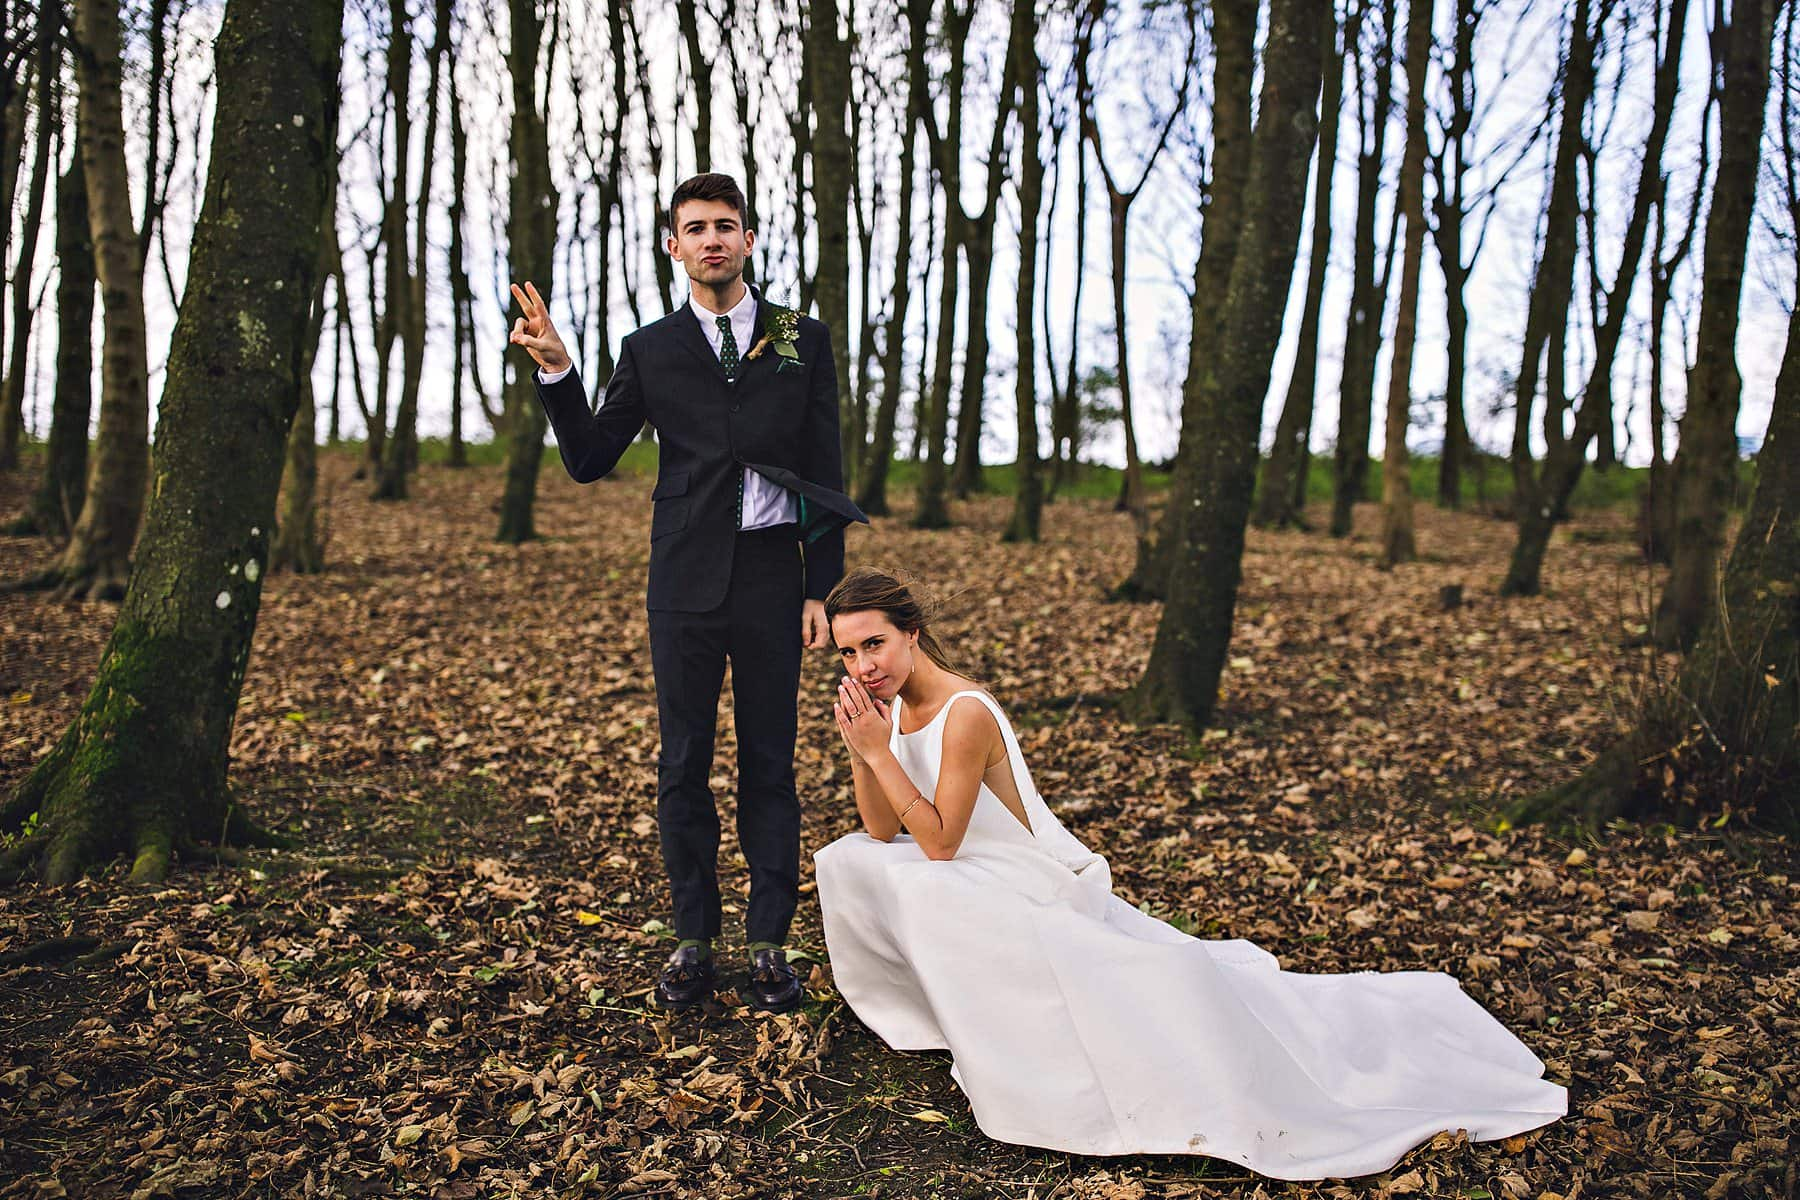 Bride Groom Devils Dyke Brighton Wedding Photographer,